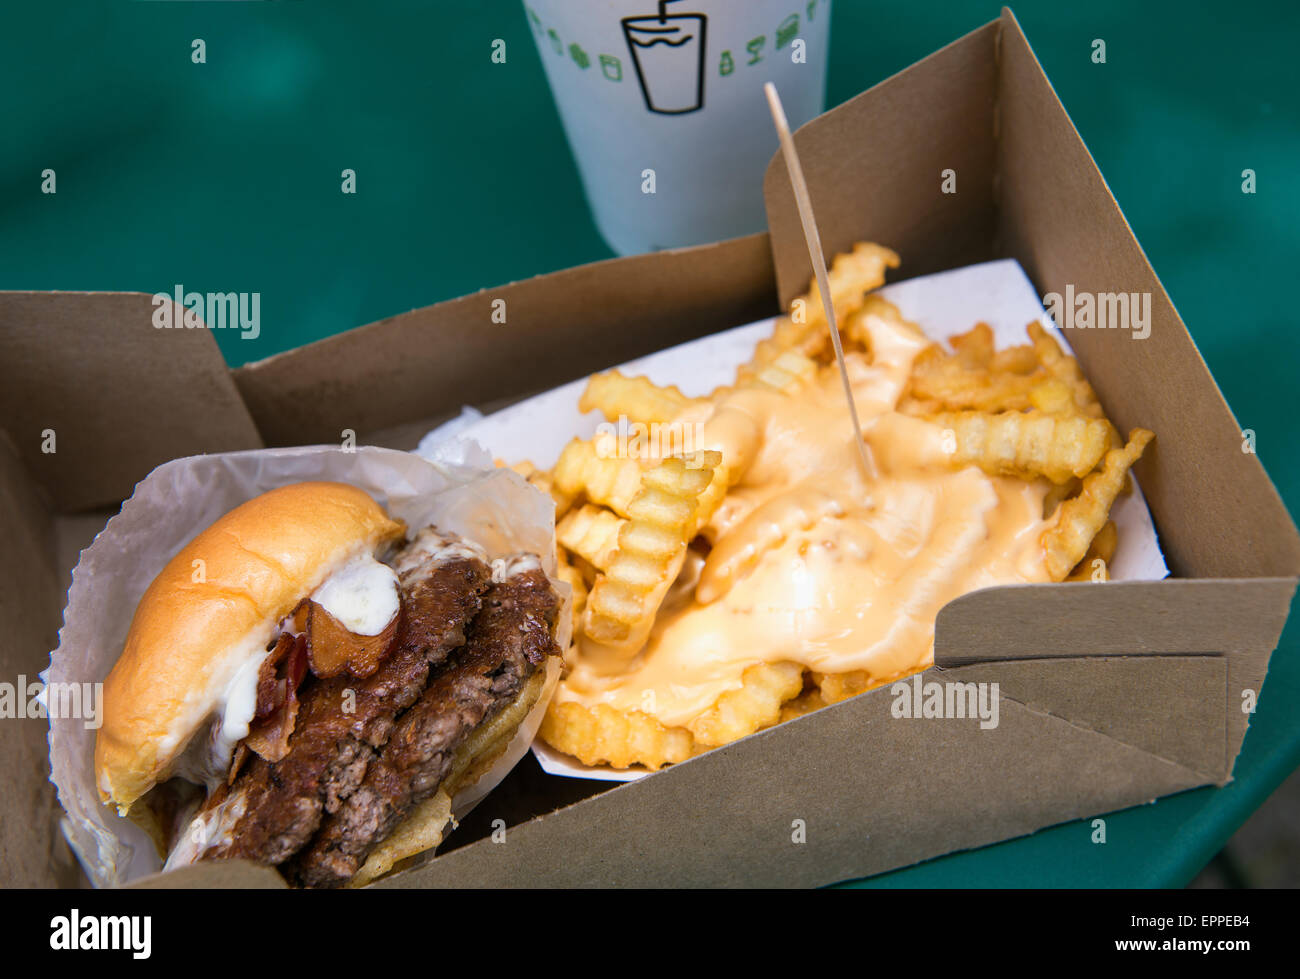 The Park burger at the grand re-opening of Shake Shack in Madison Square Park, with cheese fries. May 20th, 2015. - Stock Image